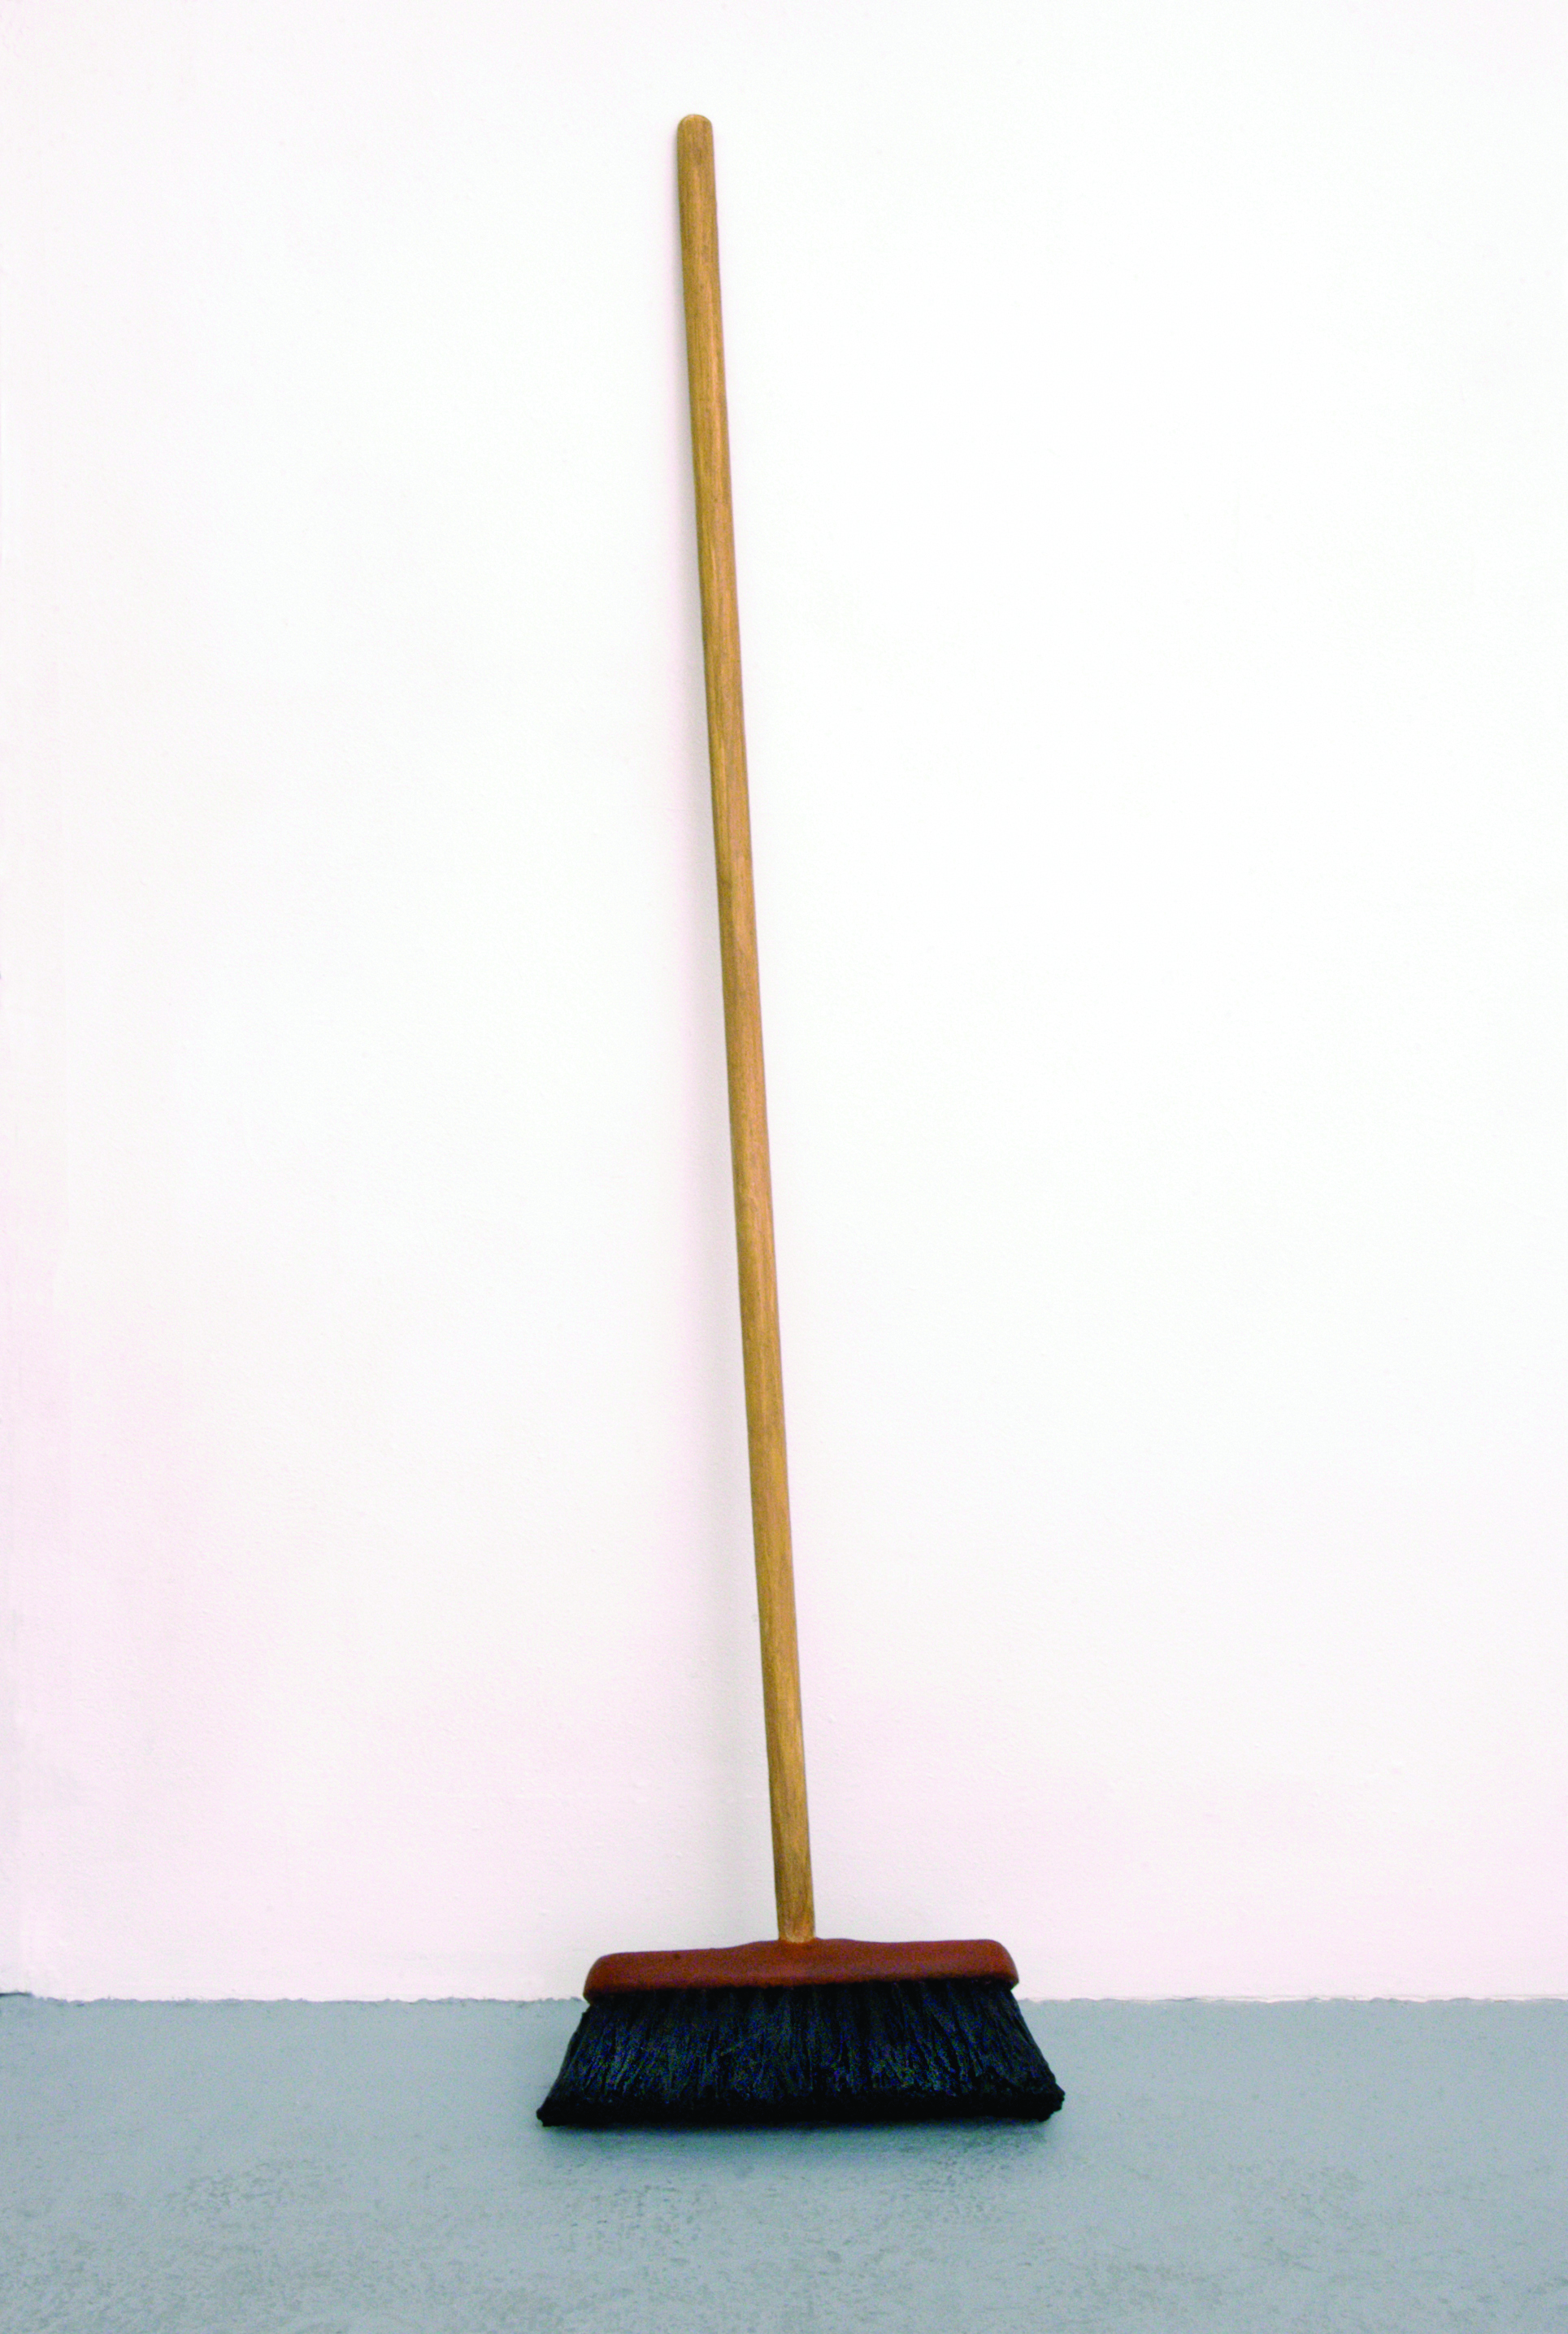 Japanese Temple  2010, wooden broom with natural bristle, oil, paint, wax, 1300 x 320 x 110mm.